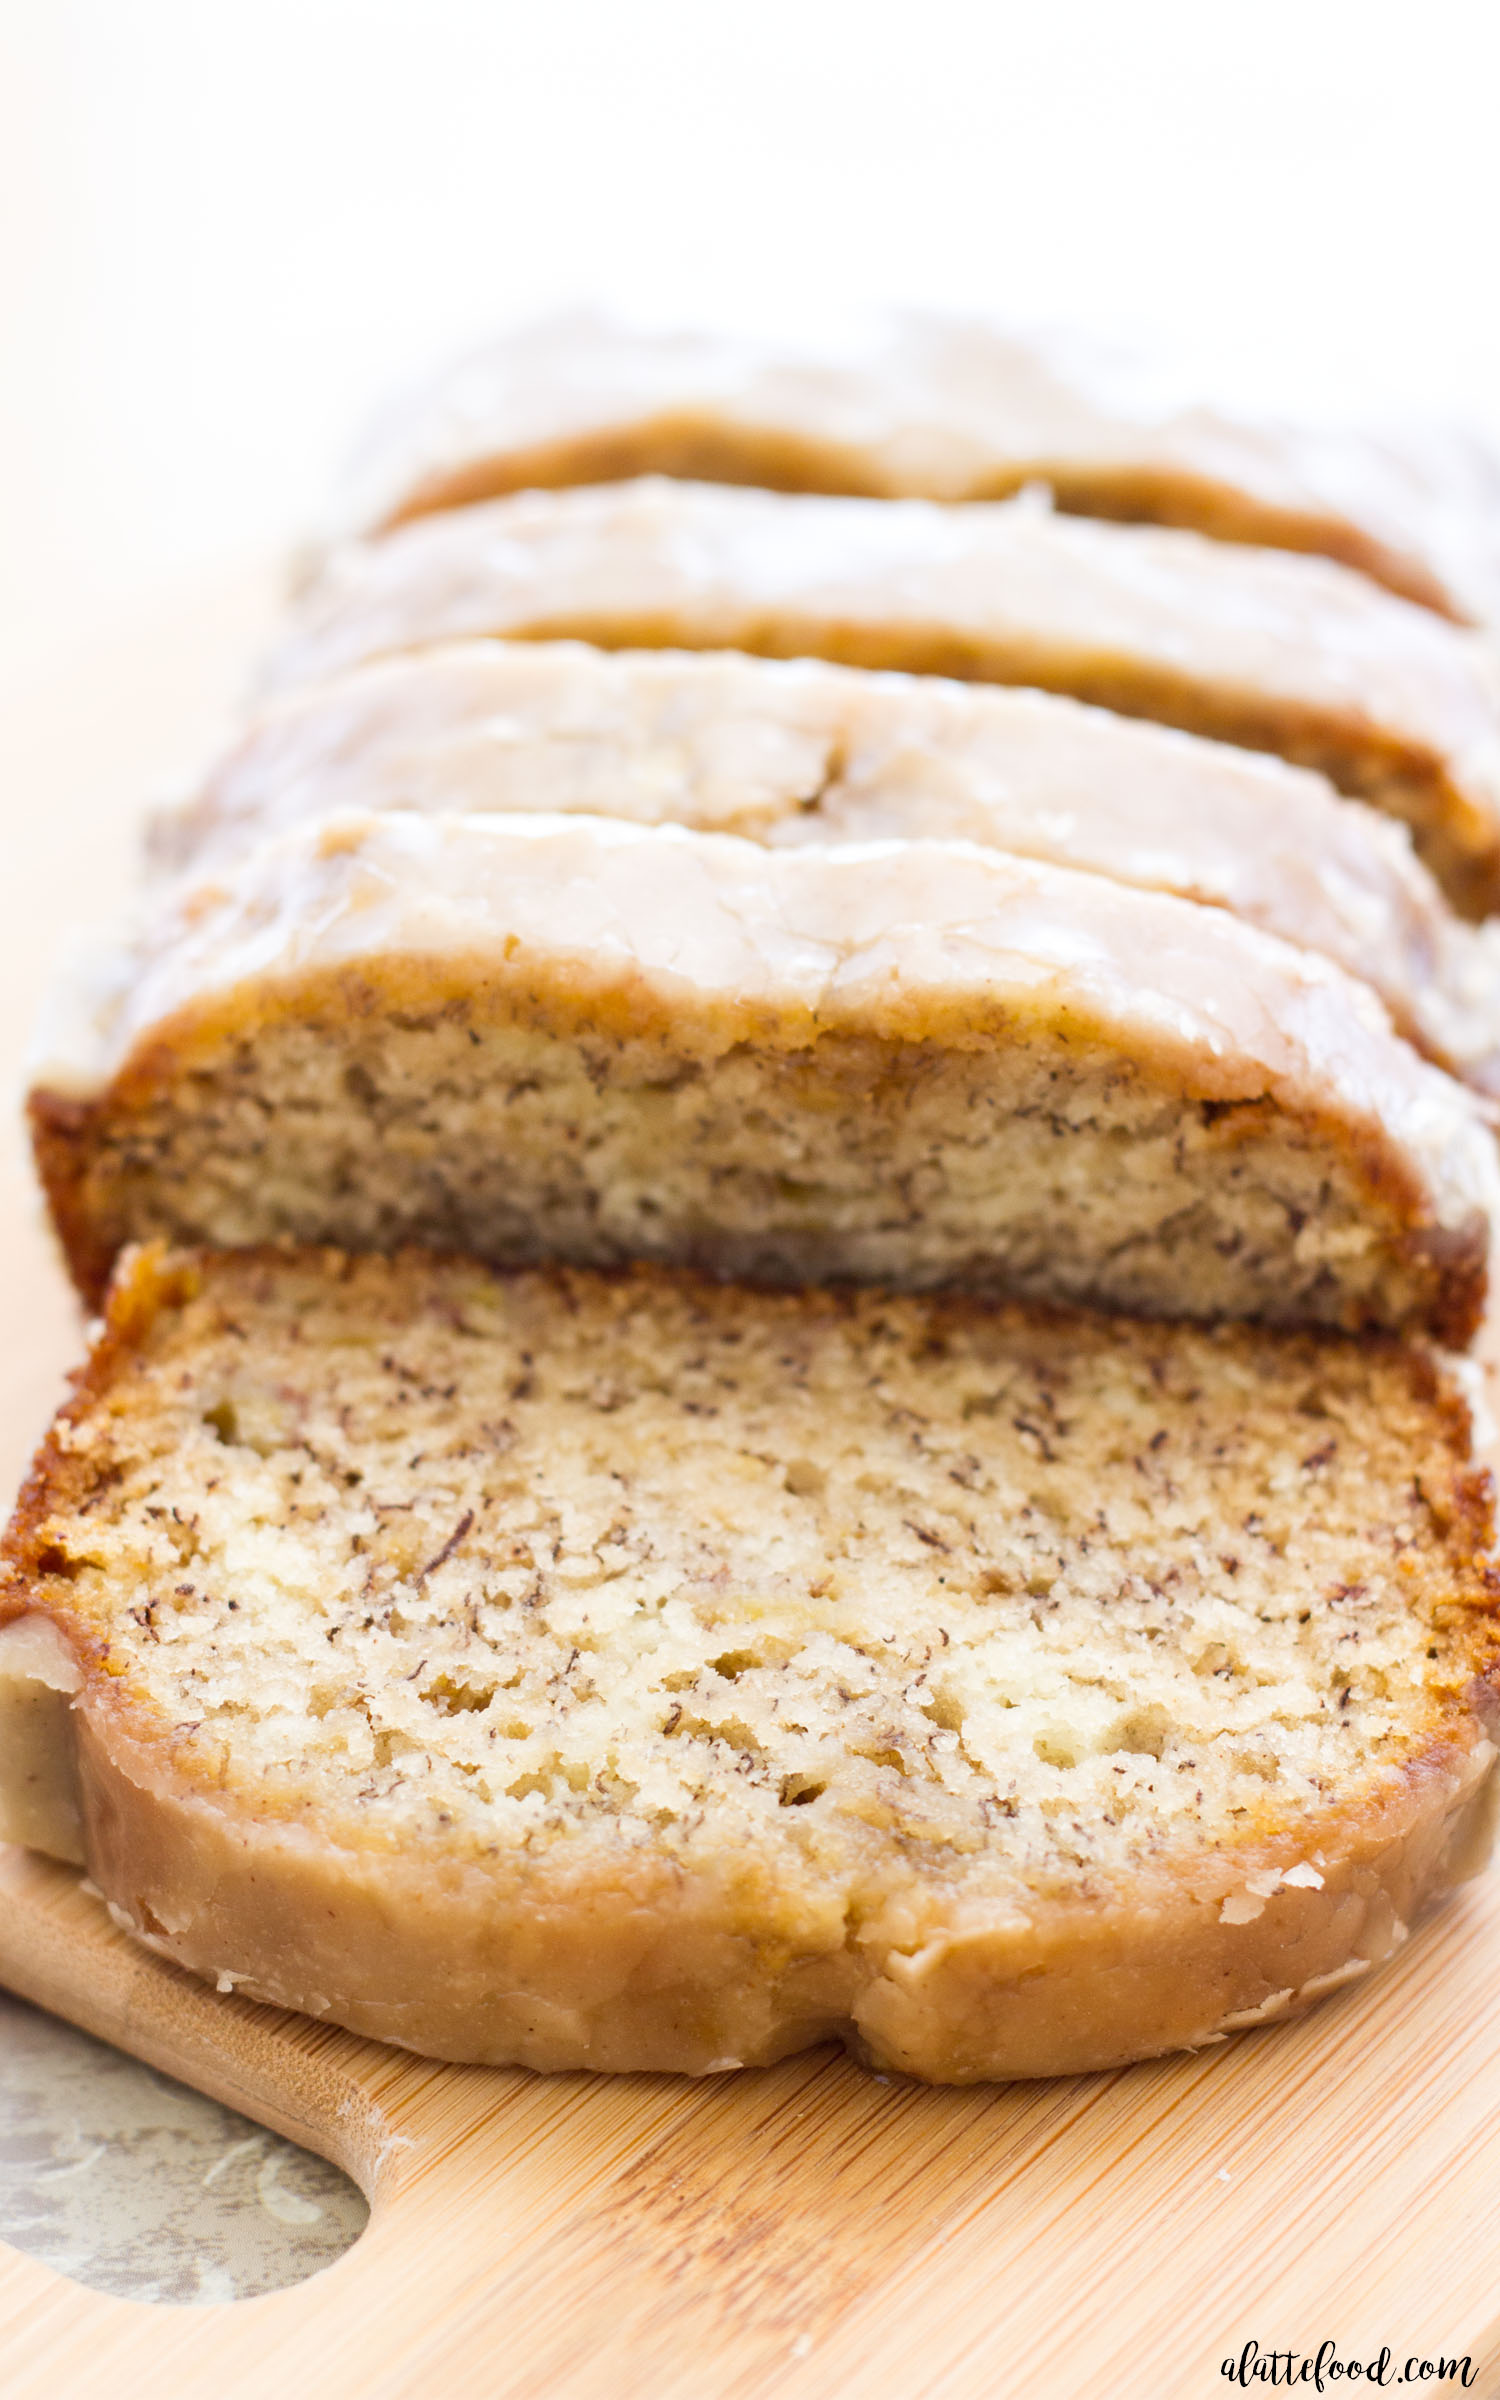 Maple glazed banana bread a latte food recipe image save ingredients bread forumfinder Choice Image